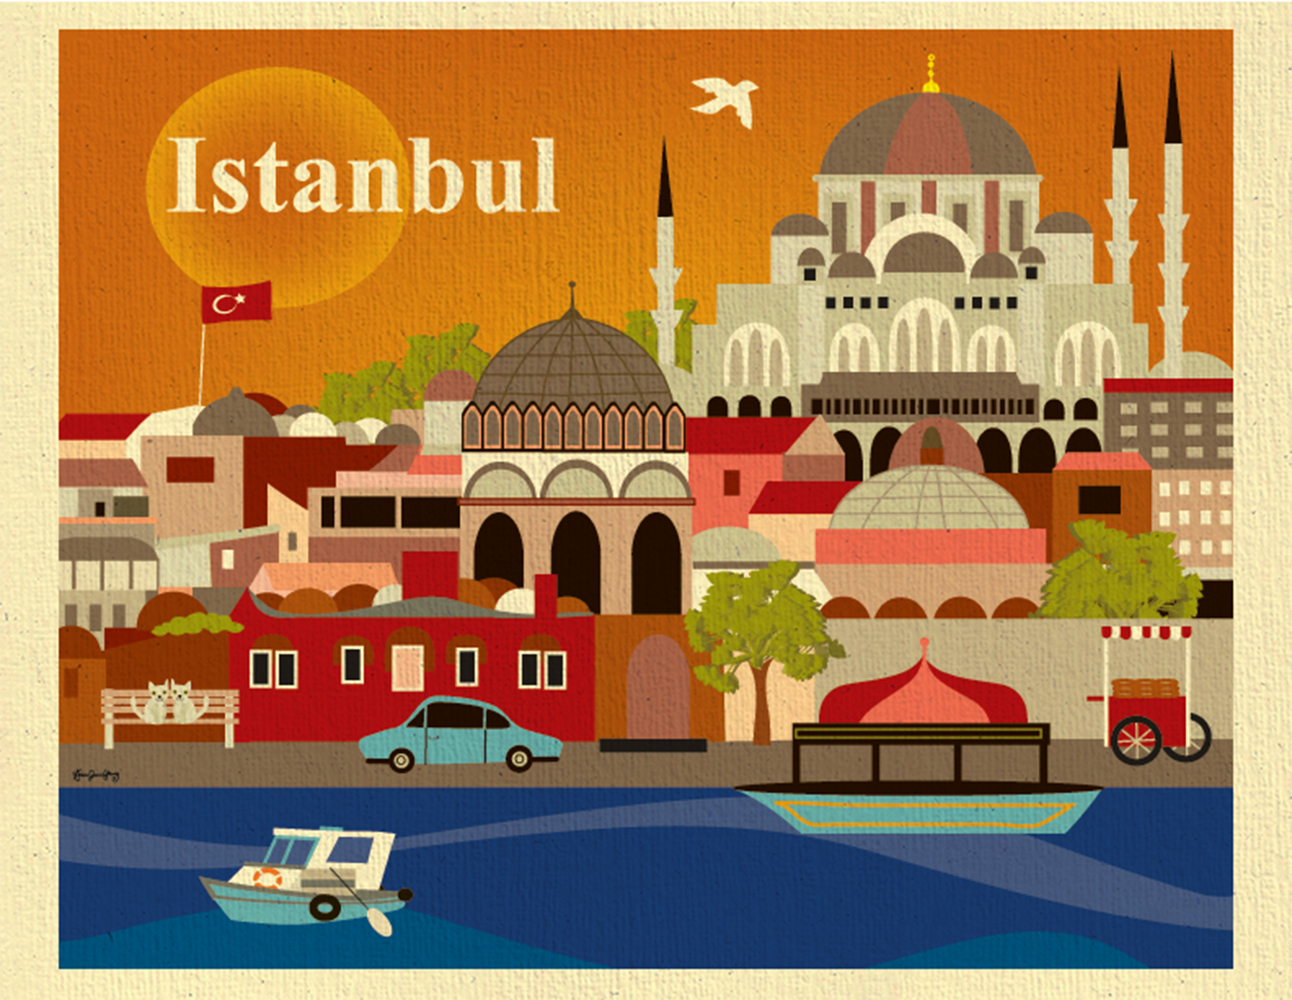 Turkey home office Istanbul Istanbul Turkey Skyline European Destination Travel Wall Art Poster Print For Home Office Loose Petals Storenvy Istanbul Turkey Skyline European Destination Travel Wall Art